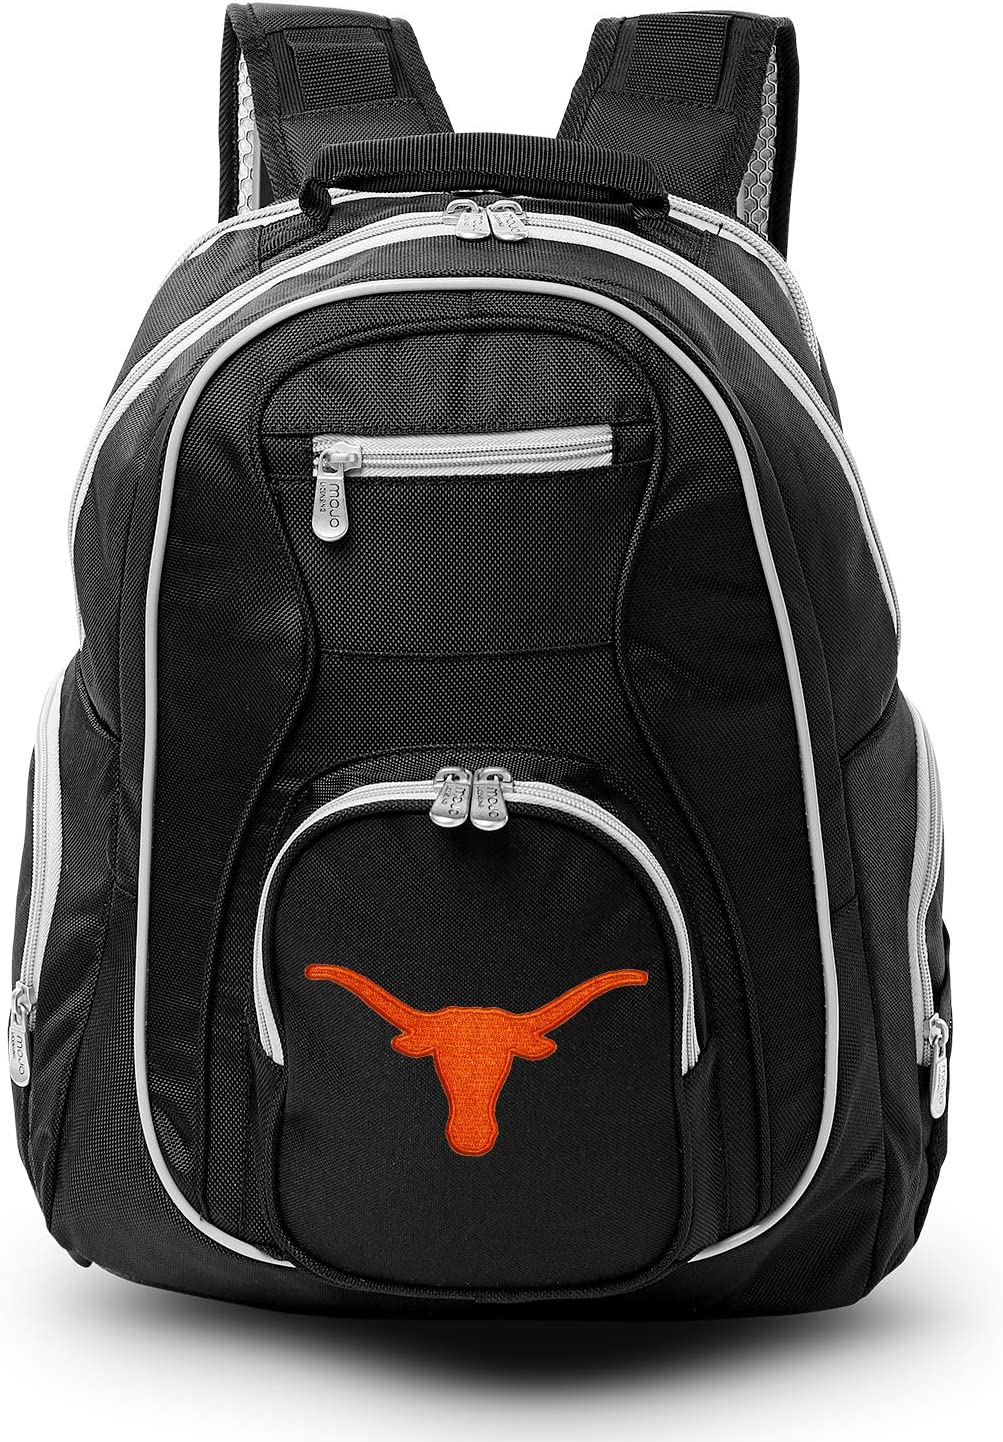 NCAA Colored Trim Premium Laptop Backpack, Measures 19-inches, Everyday Sports Backpack with Padded Shoulder Straps, Ideal for Travel, School, College, Business